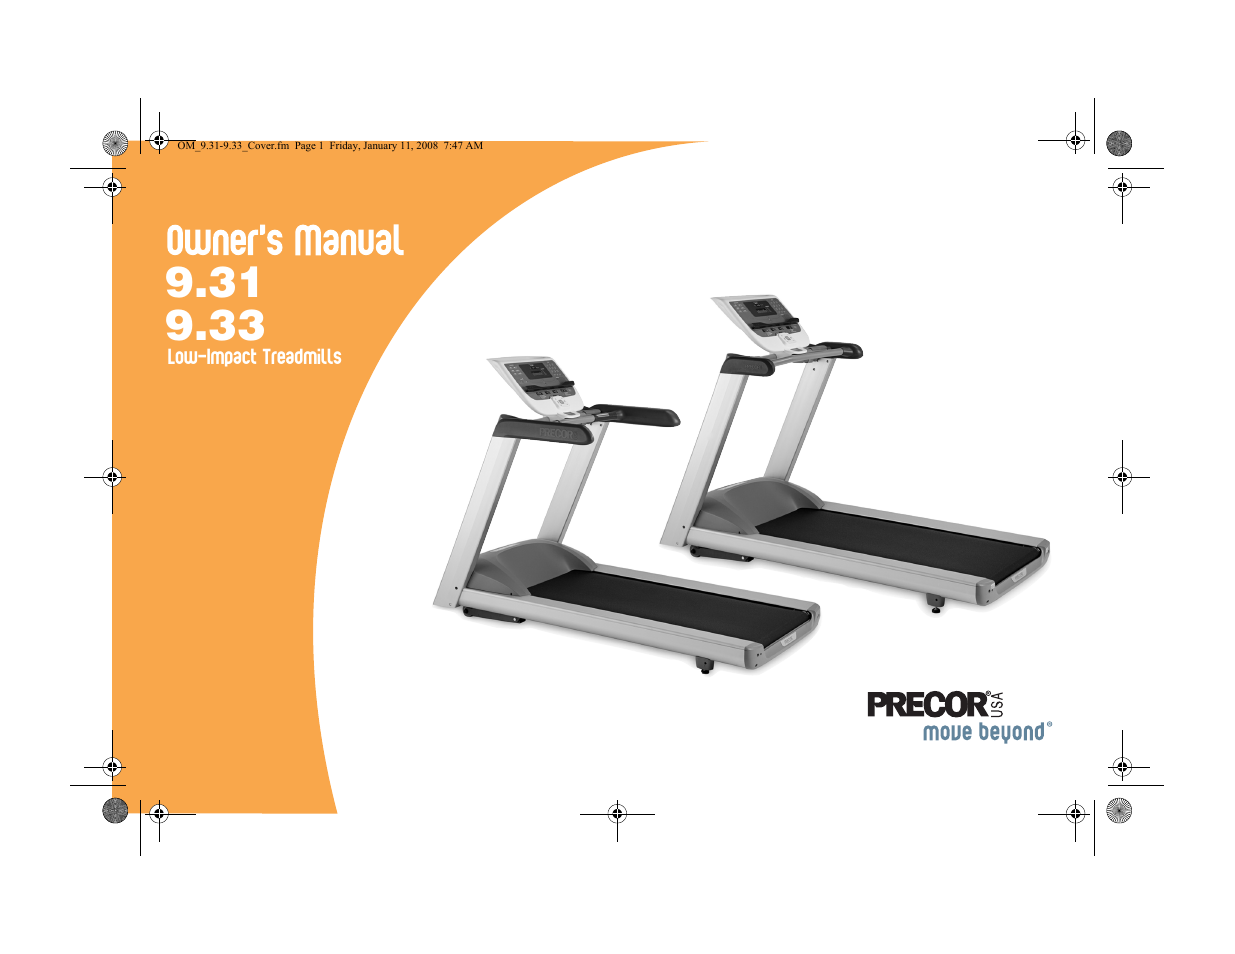 precor low-impact treadmills 9 33 user manual | 86 pages | also for:  low-impact treadmills 9 31